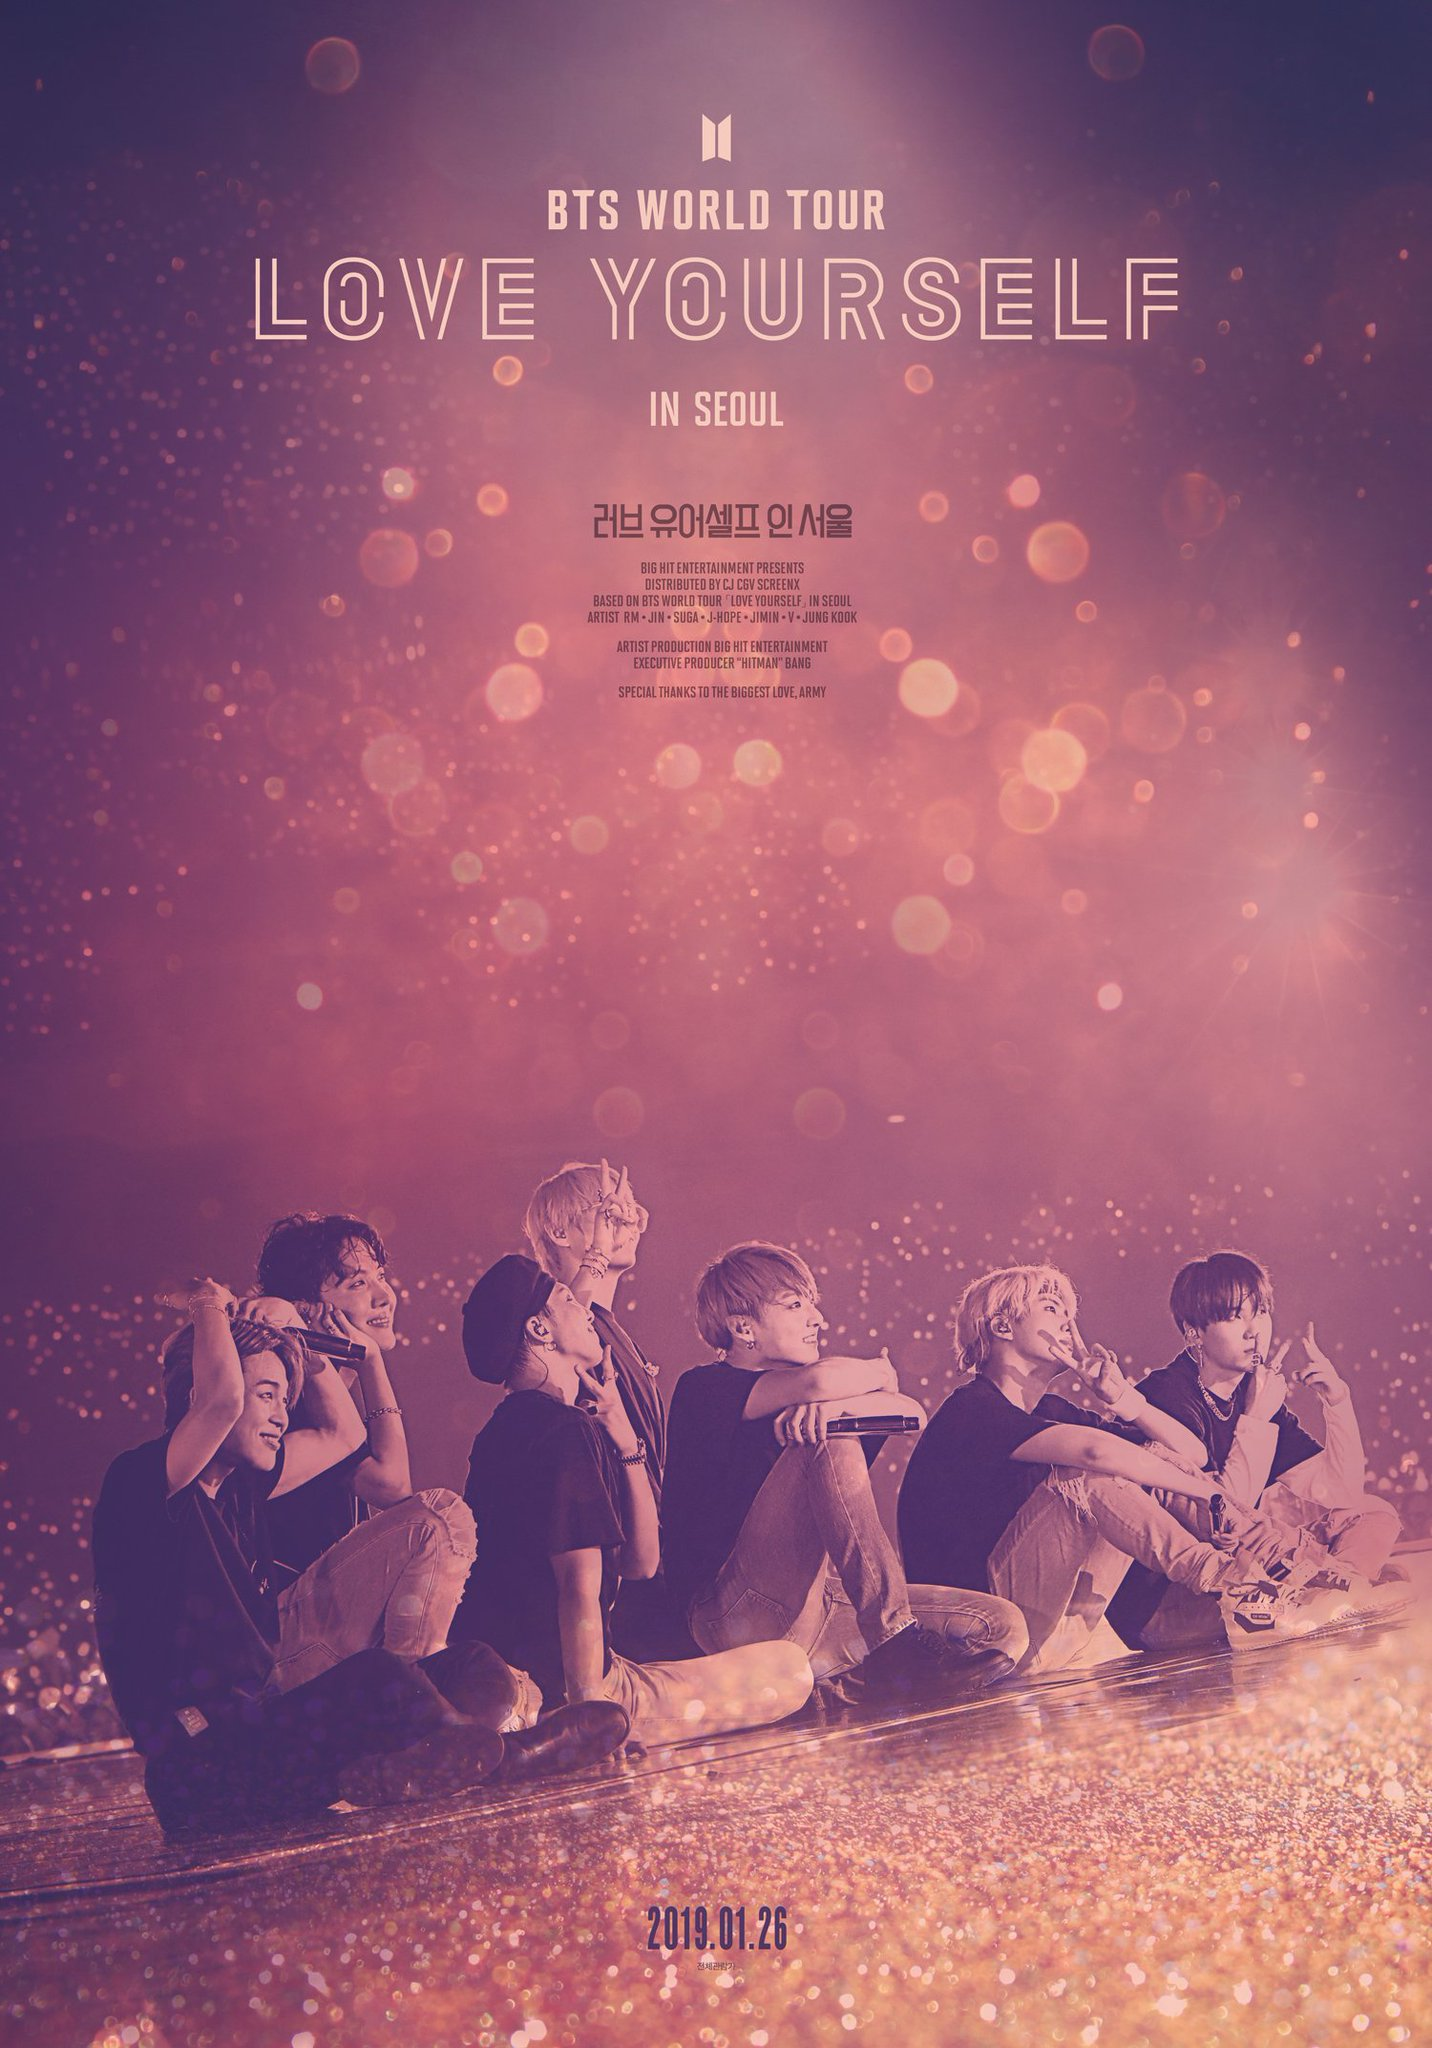 Love-Yourself-Seoul-Poster-bts-41948532-1432-2048